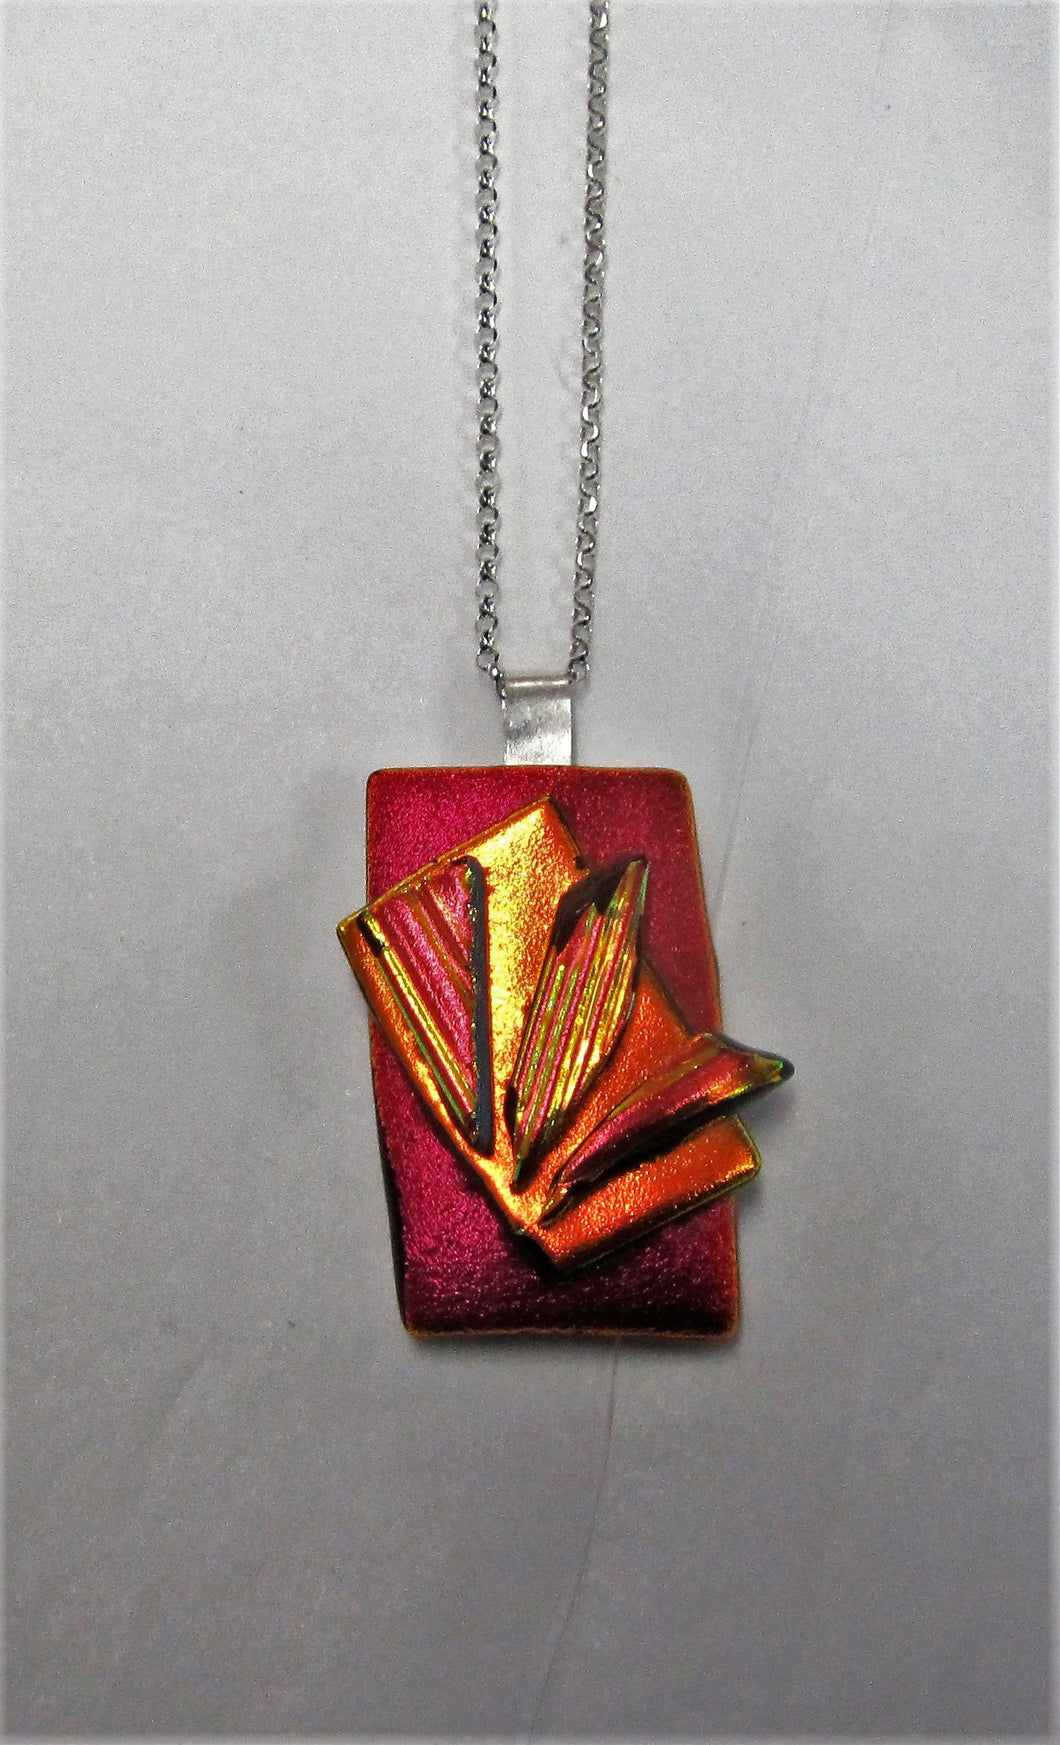 Beautiful handcrafted dichroic glass pendant on a sterling silver necklace